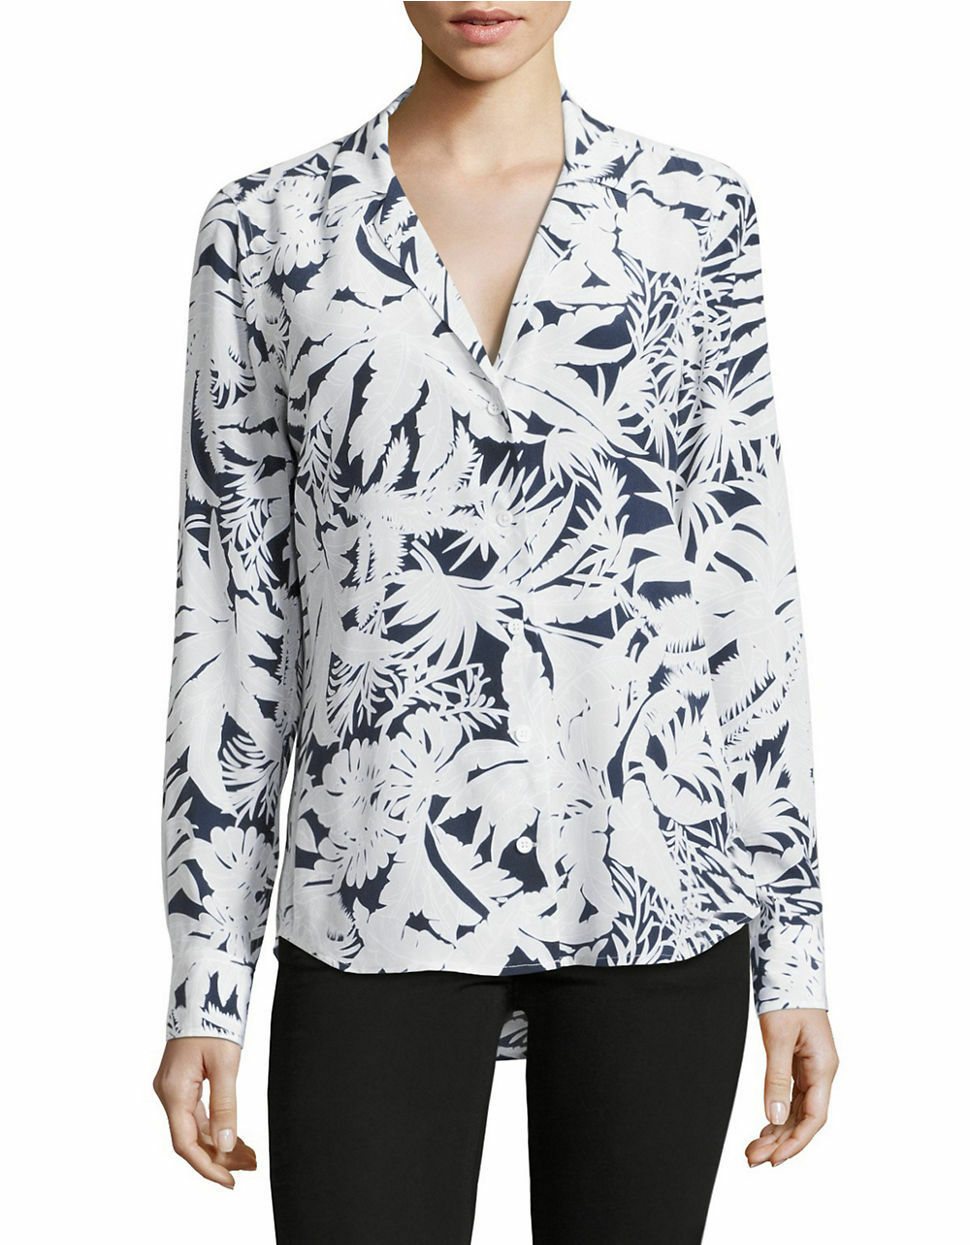 Equipment Women's Adalyn Silk Tropical Print V-Neck White/Blue Button Up Shirt - Luxe Fashion Finds